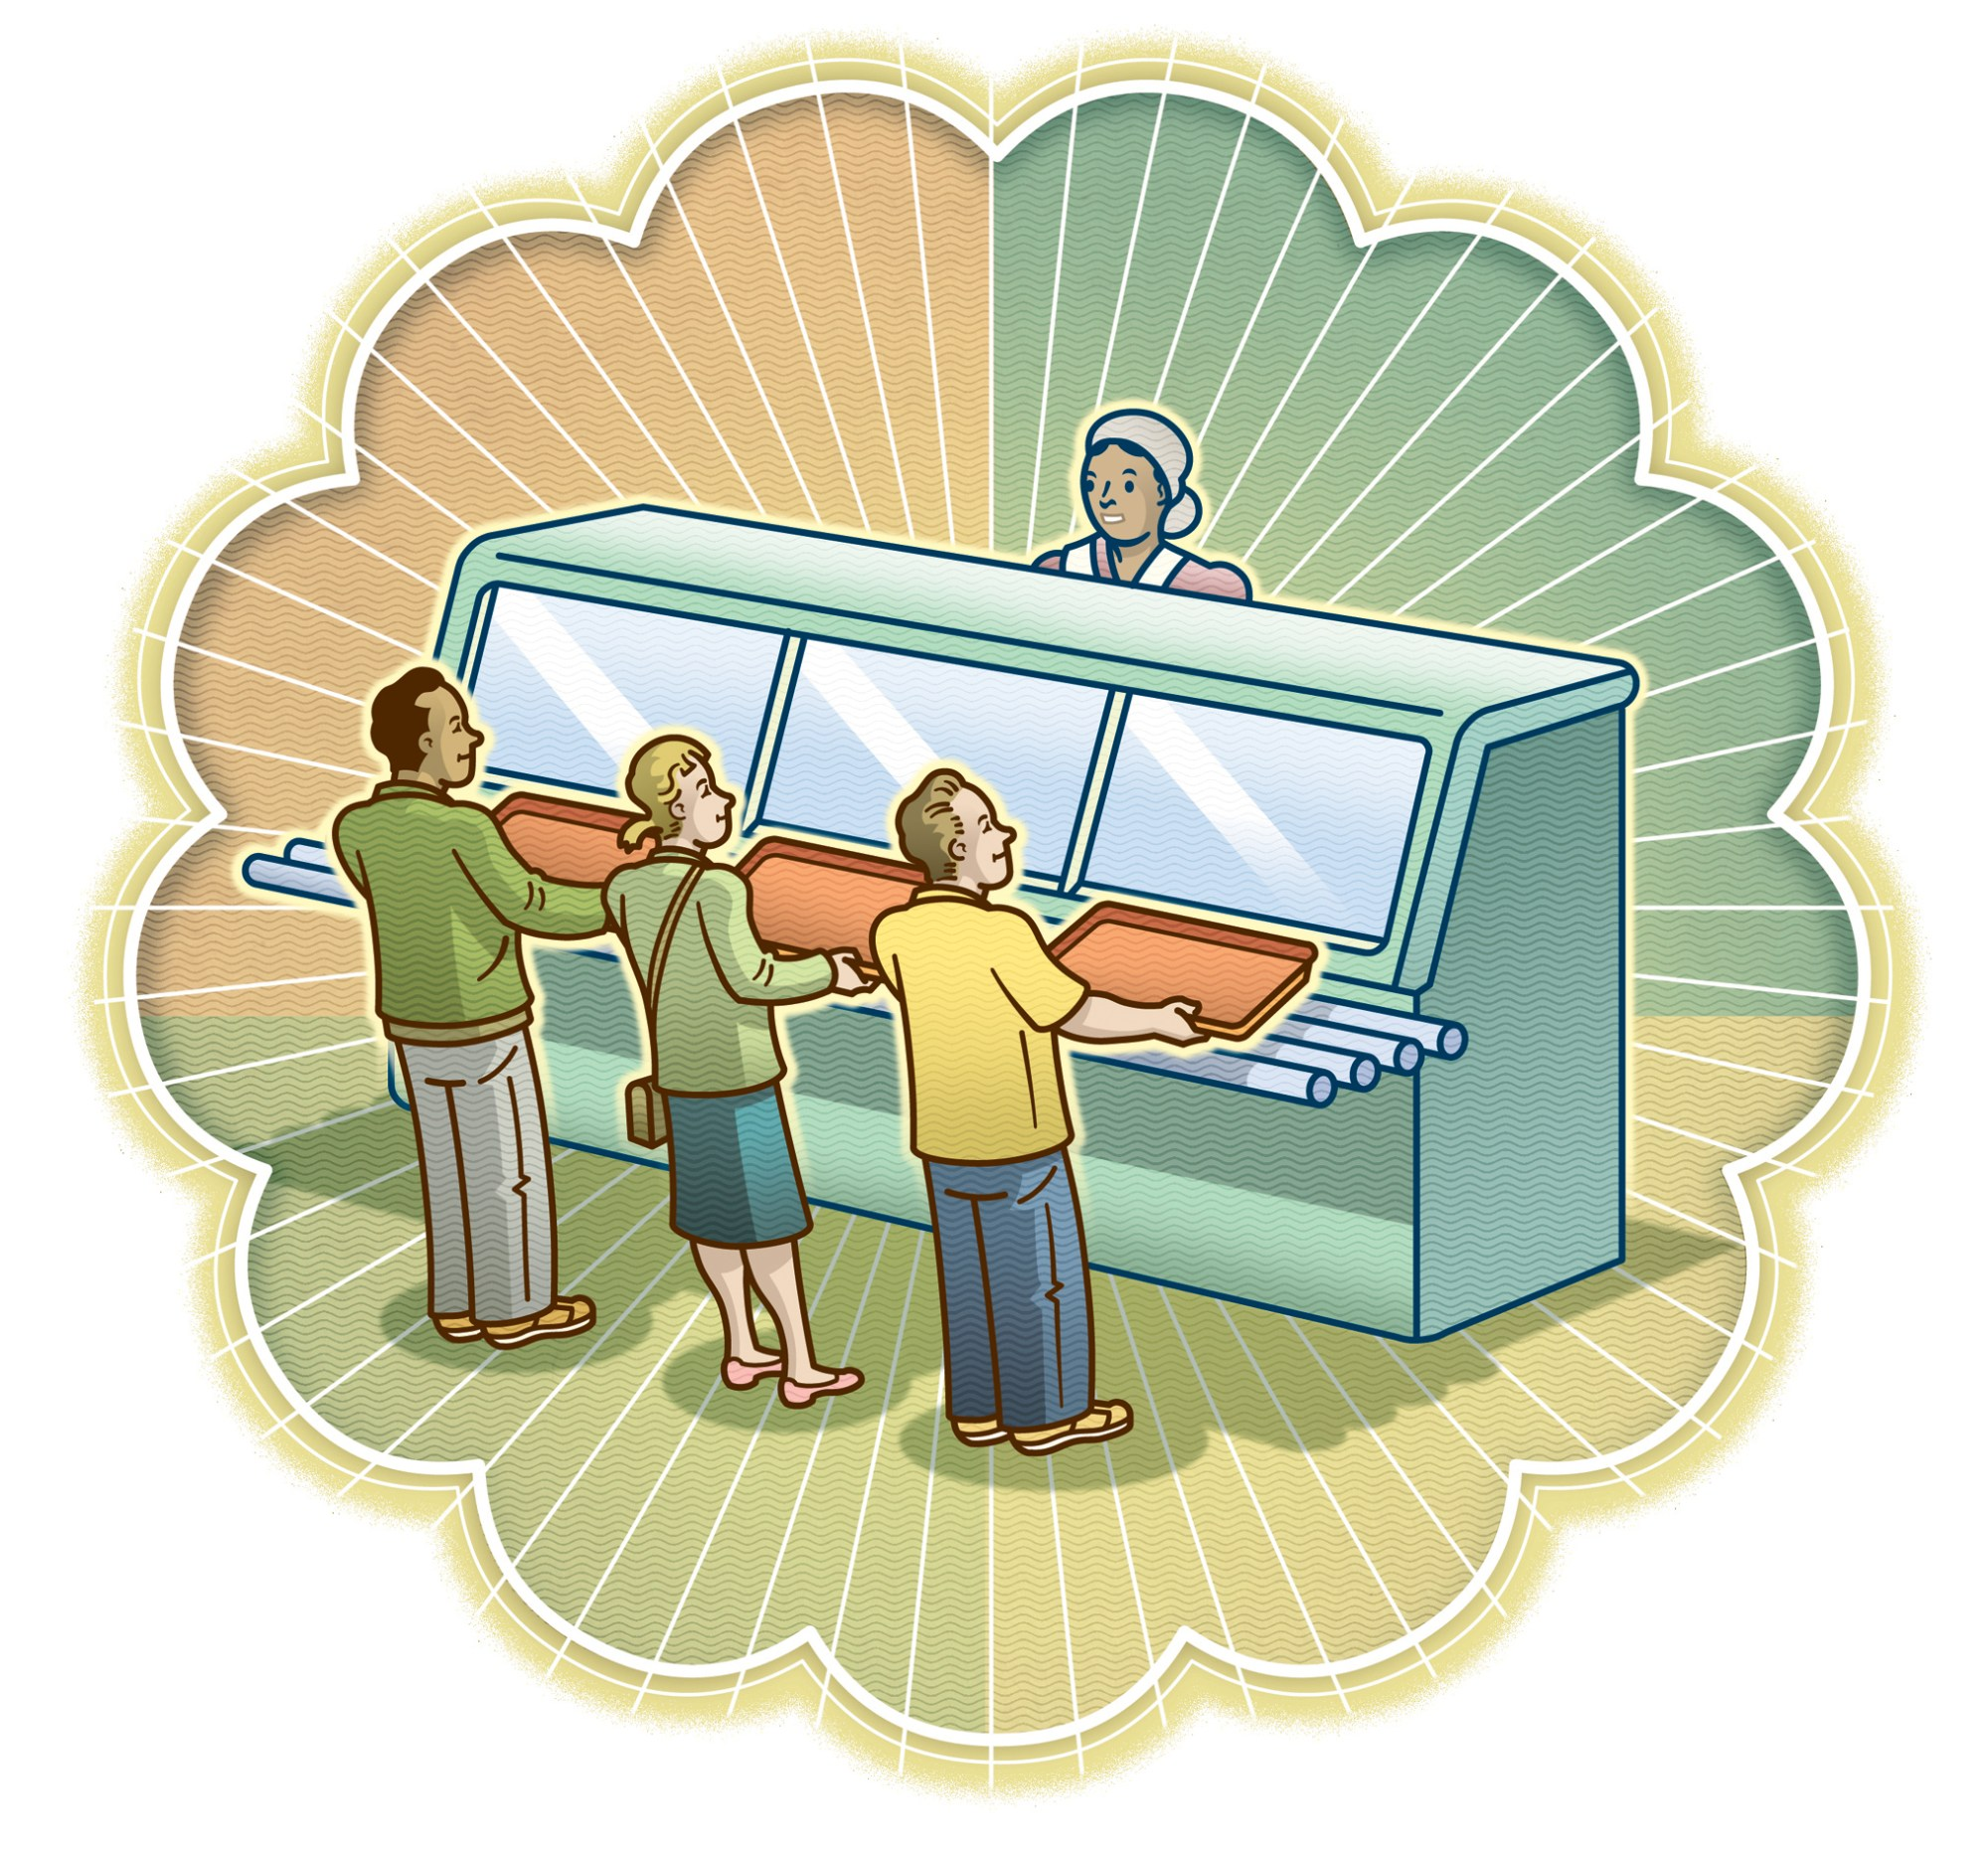 hight resolution of clip arts related to cafeteria worker clipart viewing gallery clipart